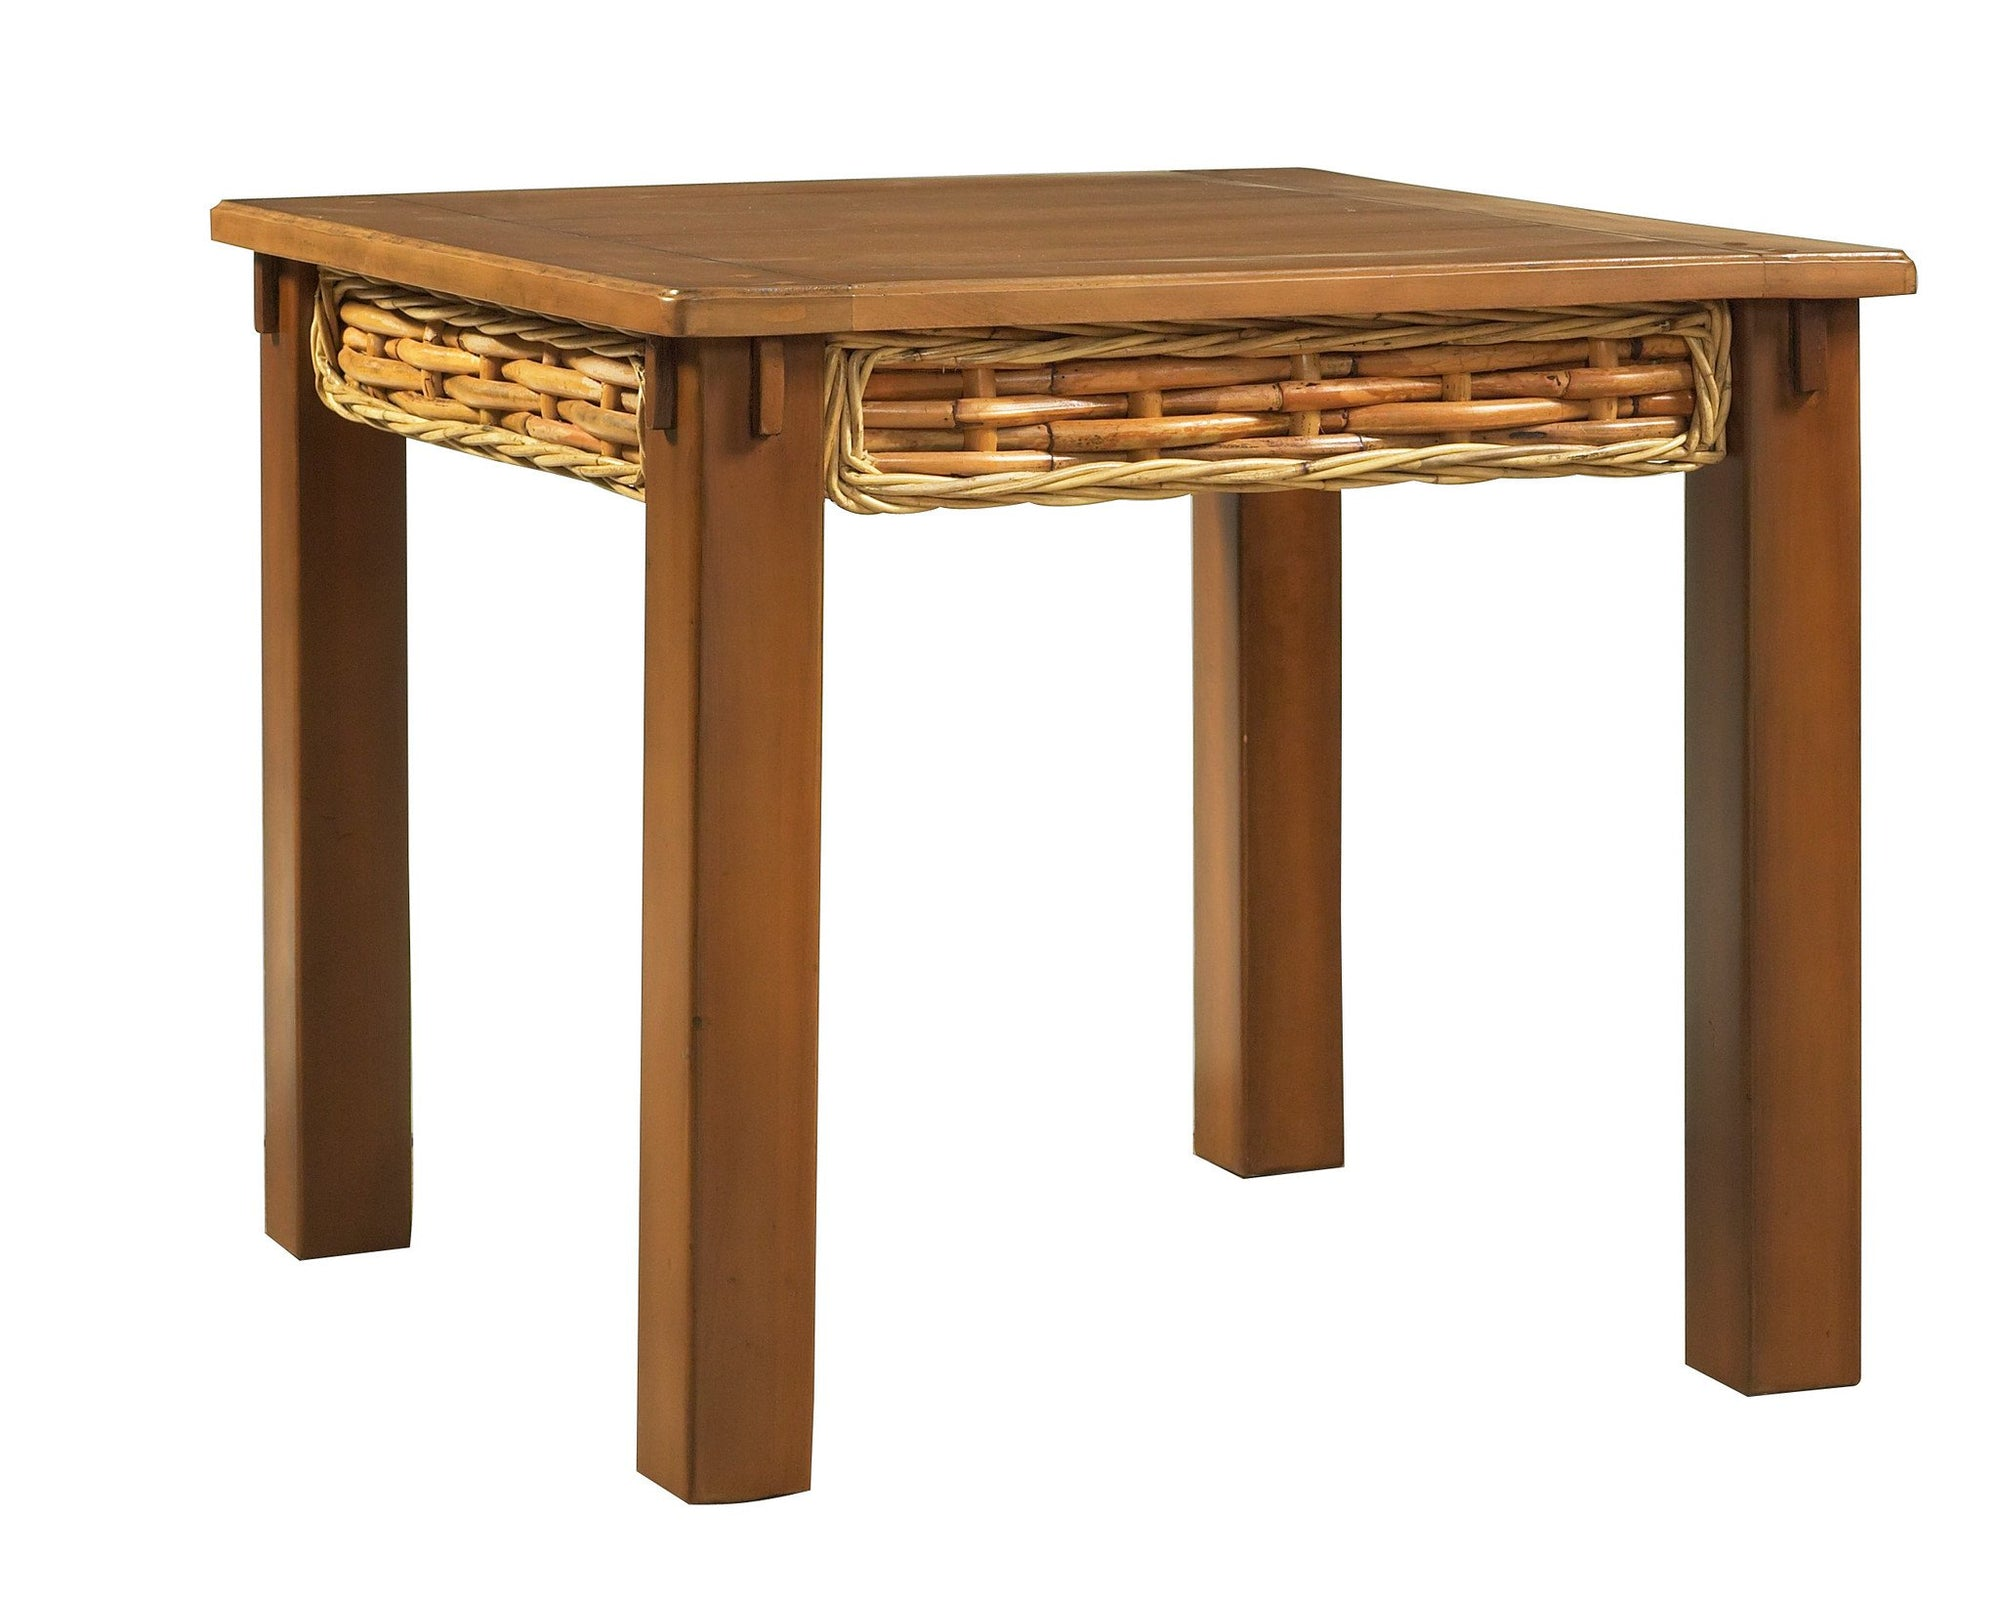 Designer Wicker & Rattan By Tribor Freeport Rectangular End Table by Designer Wicker from Tribor End Table - Rattan Imports